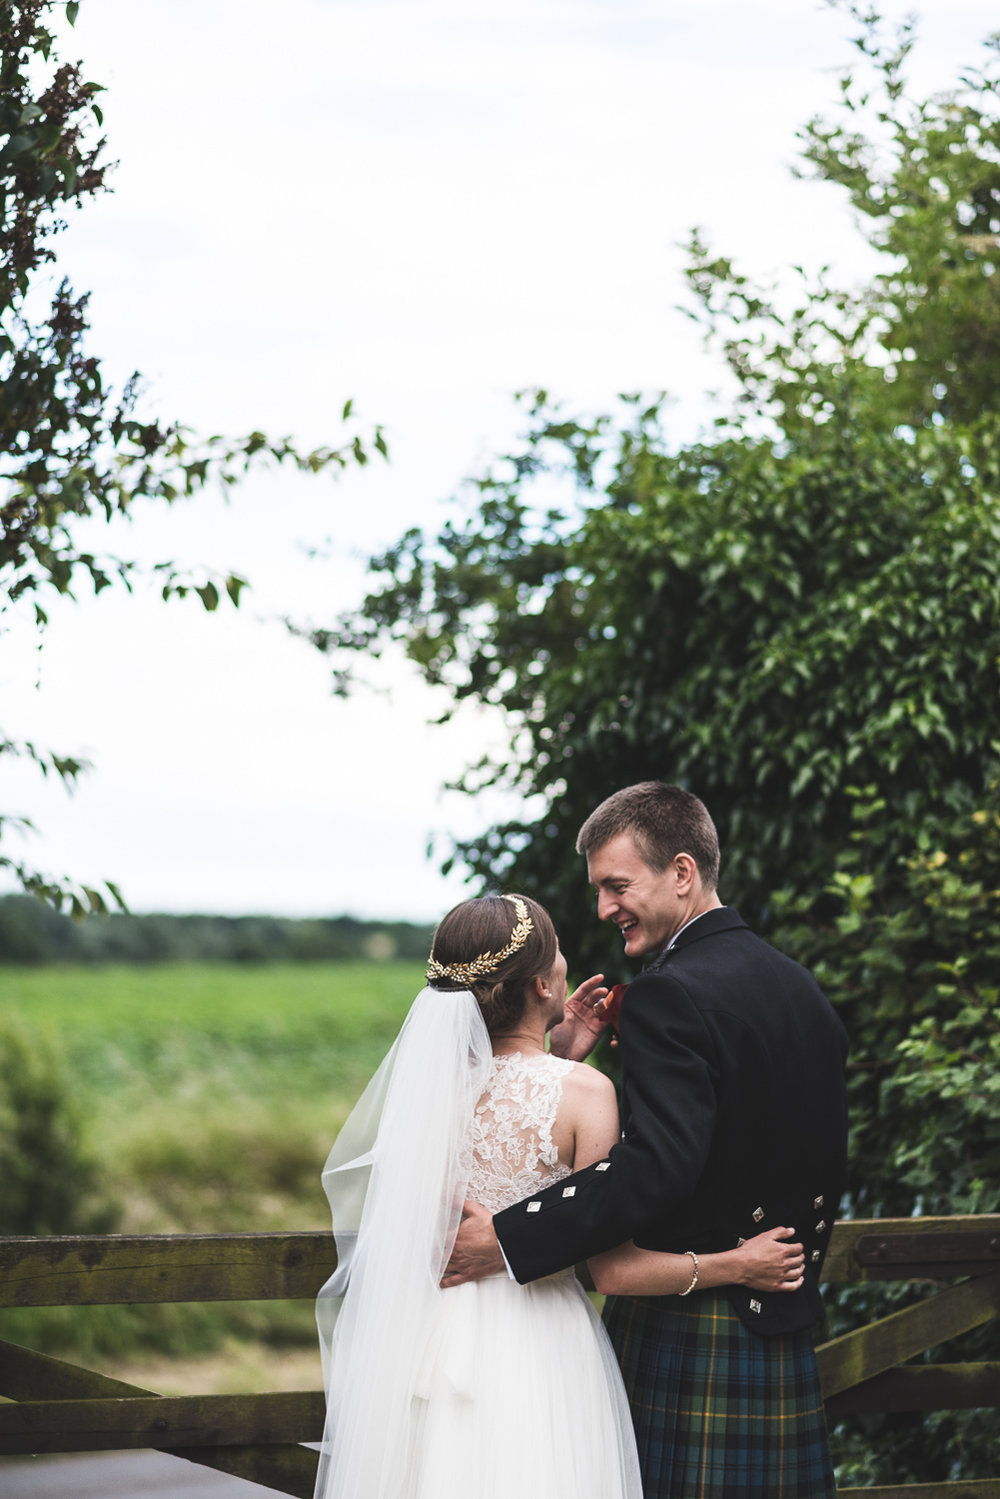 Holly & Graeme Bedfordshire Country Garden Wedding - Emma Hare Photography-505.jpg